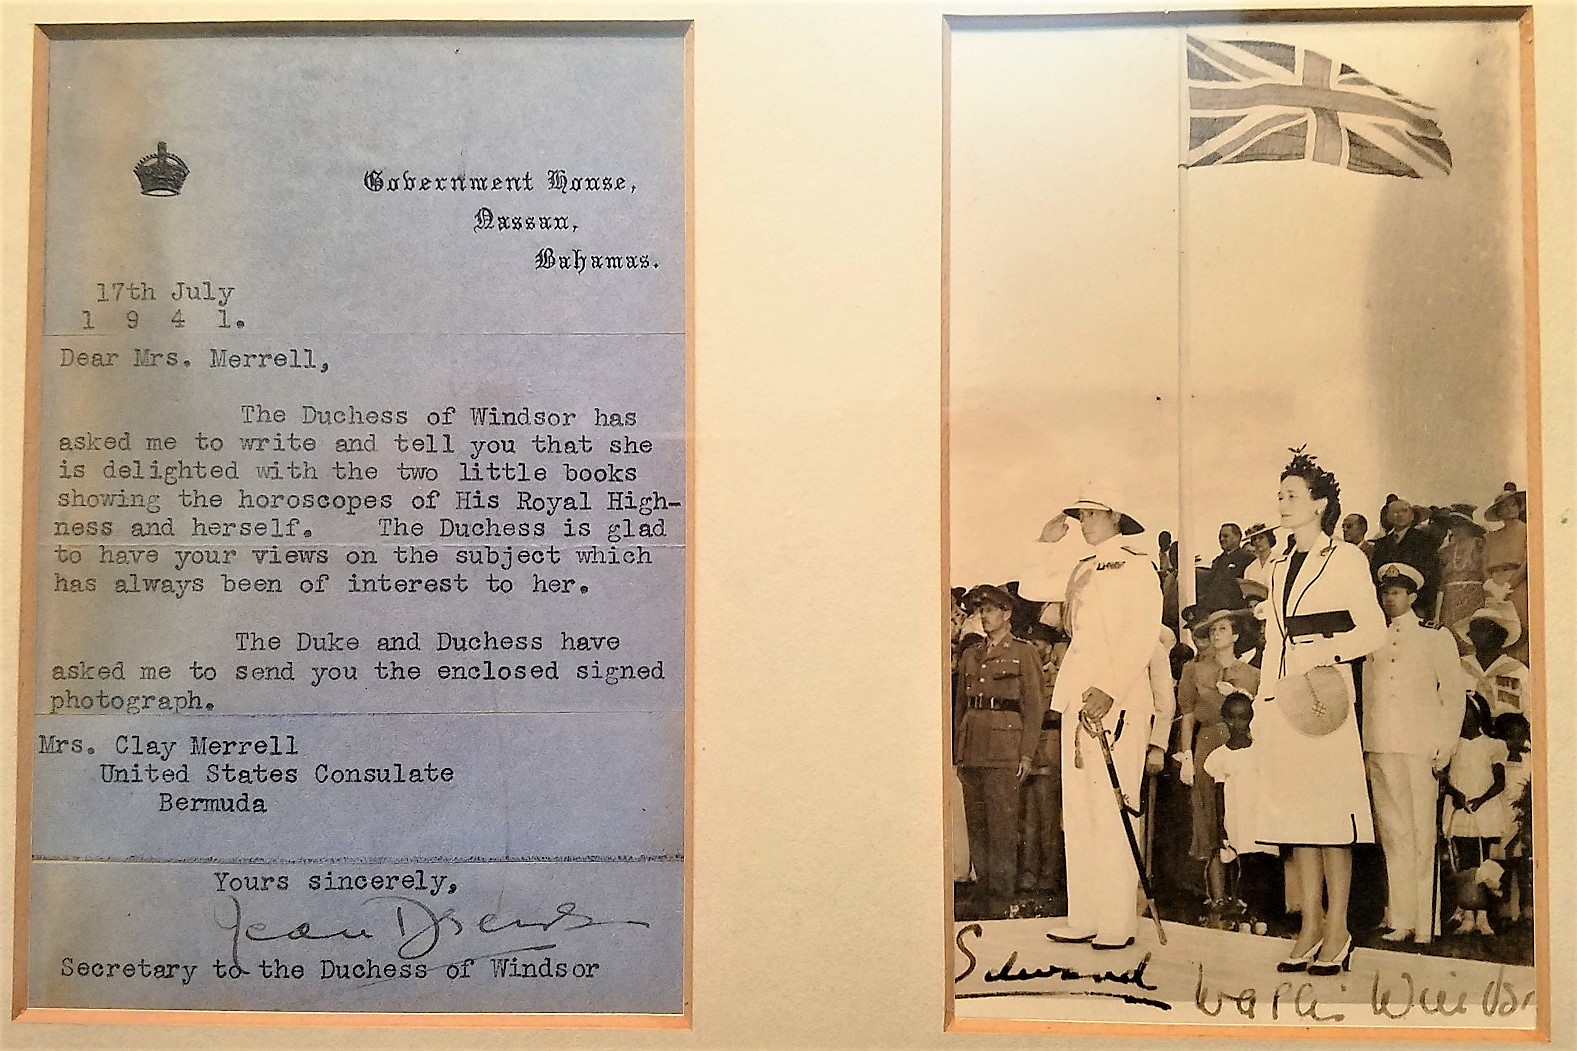 DUKE AND DUCHESS OF WINDSOR ORIGINAL PHOTO AND ASSOCATION LETTER